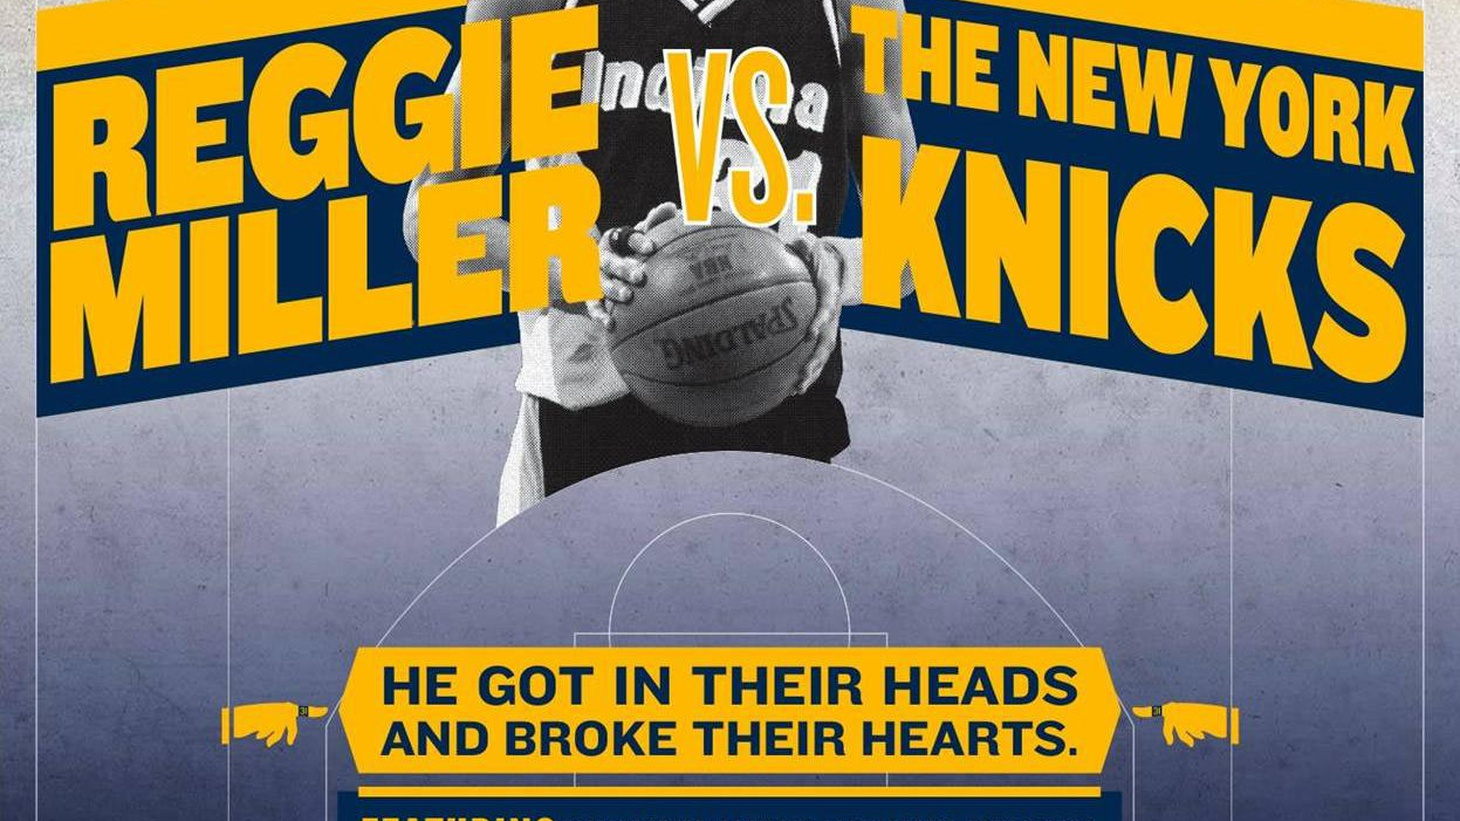 In his documentaries, director Dan Klores (Crazy Love, Ring of Fire: The Emile Griffith Story, Black Magic)  takes an event, then lets the participants offer their points of view. It illuminates, not complicates. His newest film, Winning Time, showcases Reggie Miller and Spike Lee.